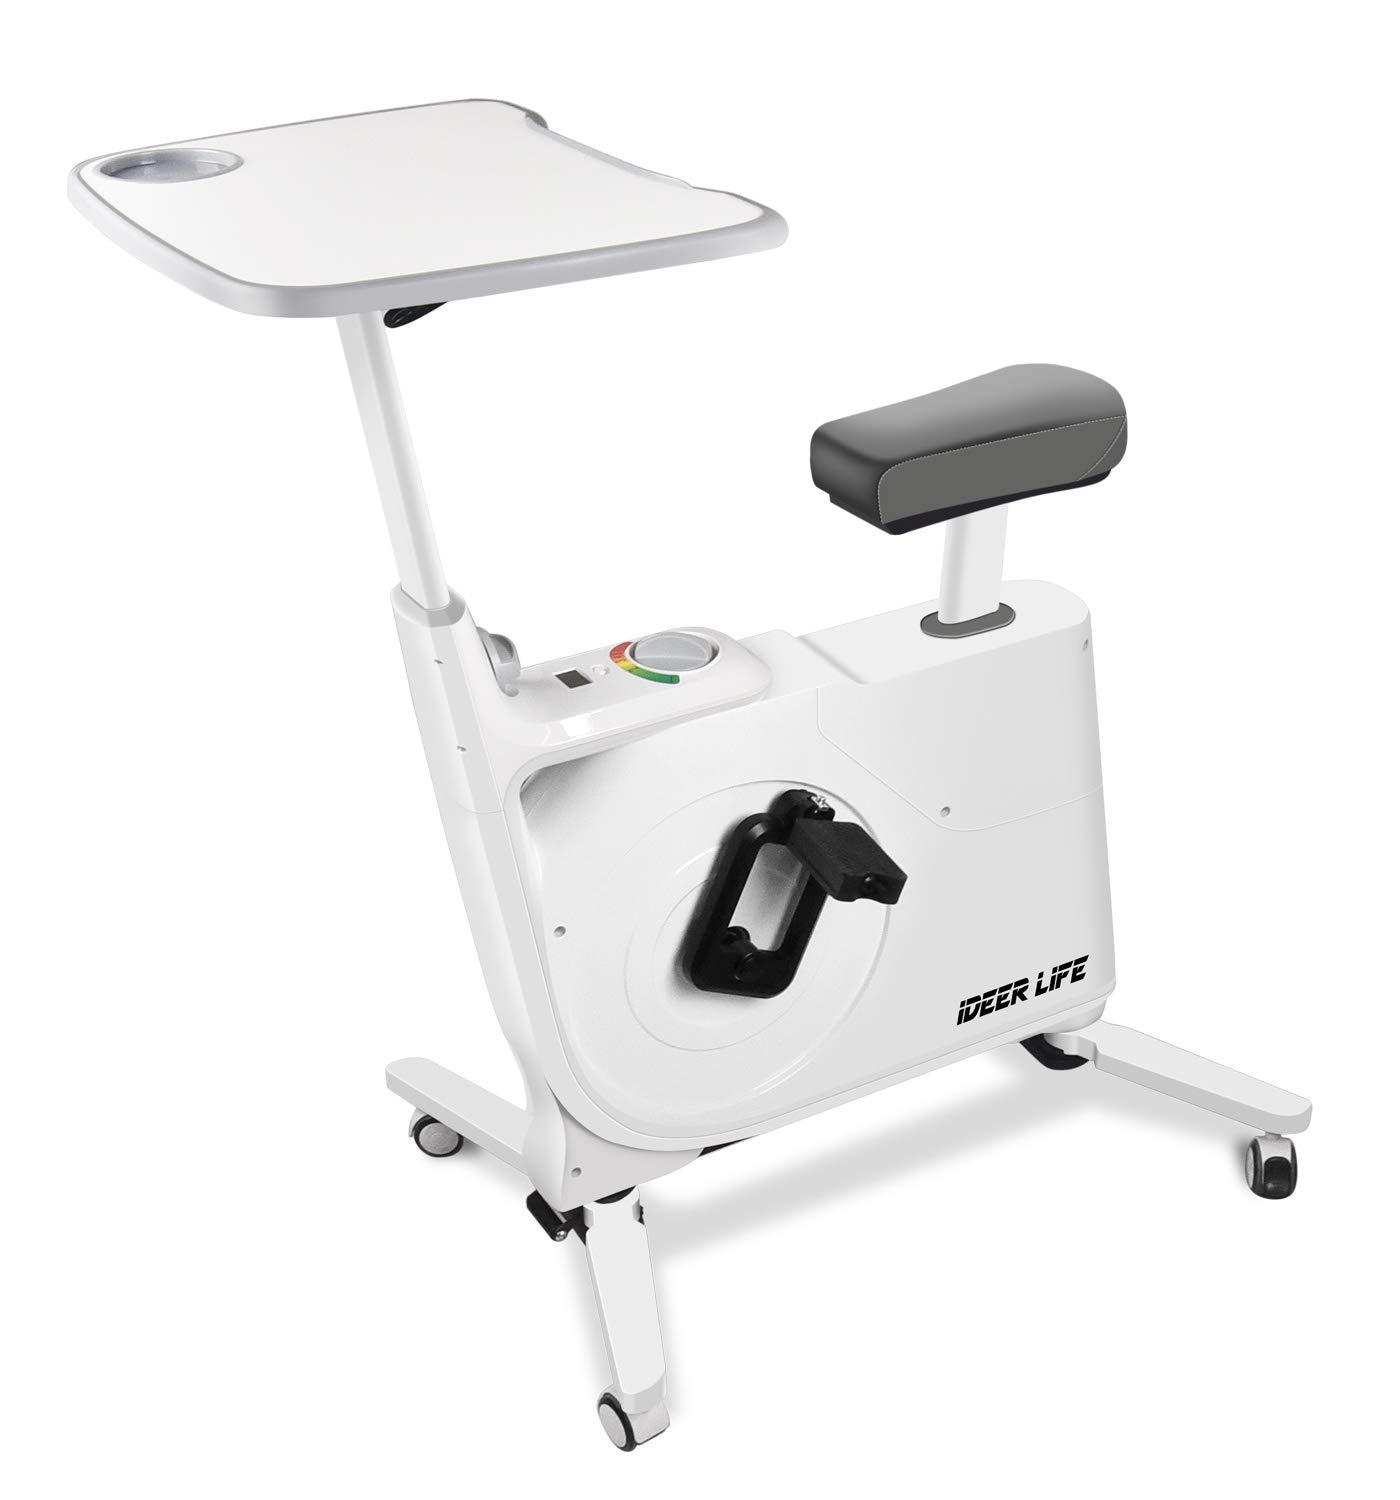 Wondrous 7 Best Desk Exercise Bikes Reviewed And Compared Price Short Links Chair Design For Home Short Linksinfo